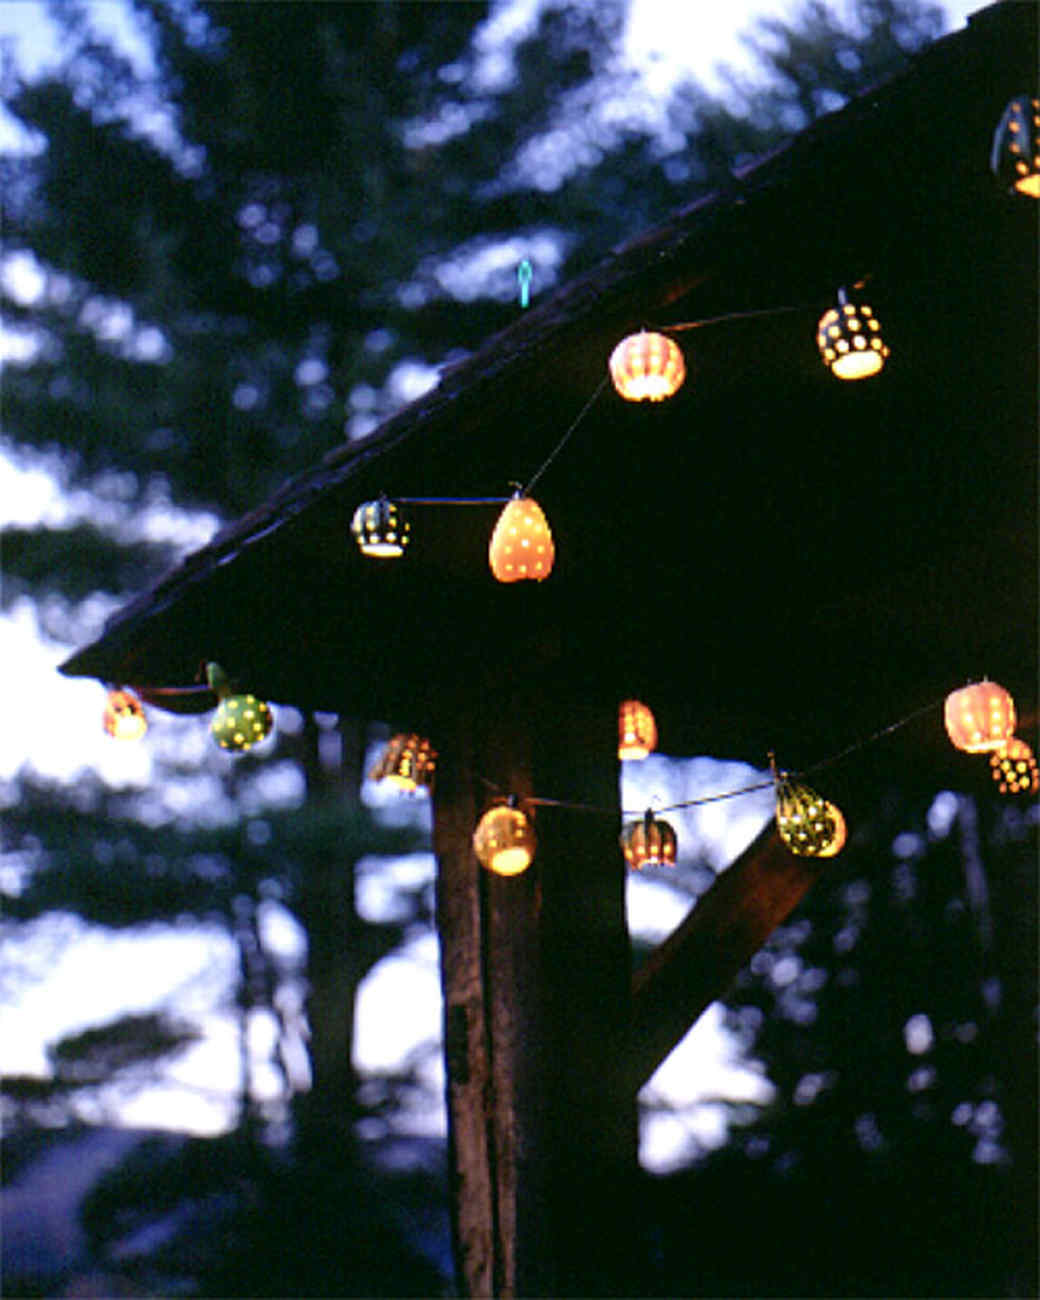 Decorative Hanging Gourd Lights